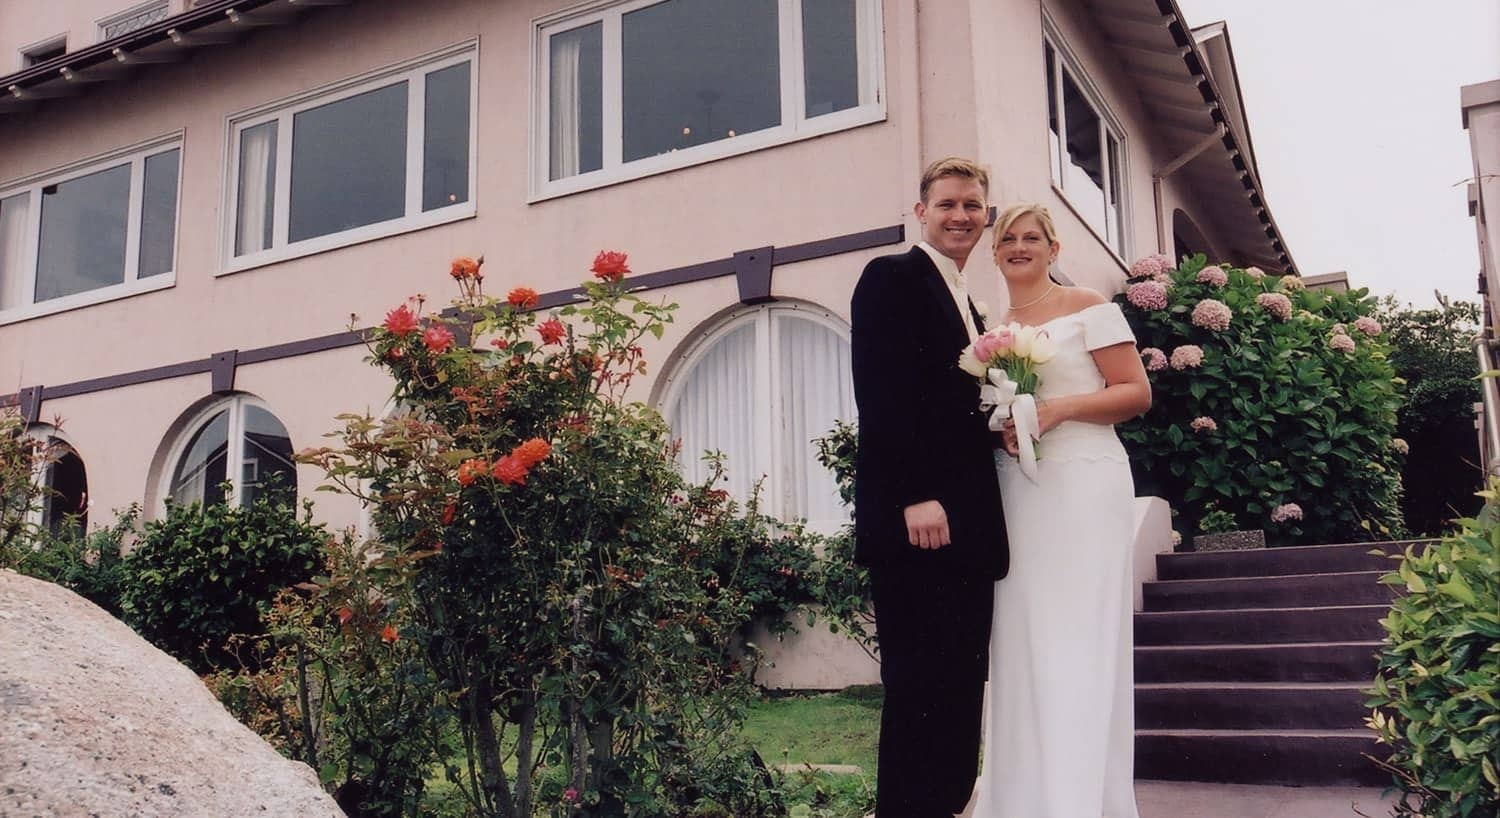 Bride and groom standing outside the pink inn surrounded by flowering plants